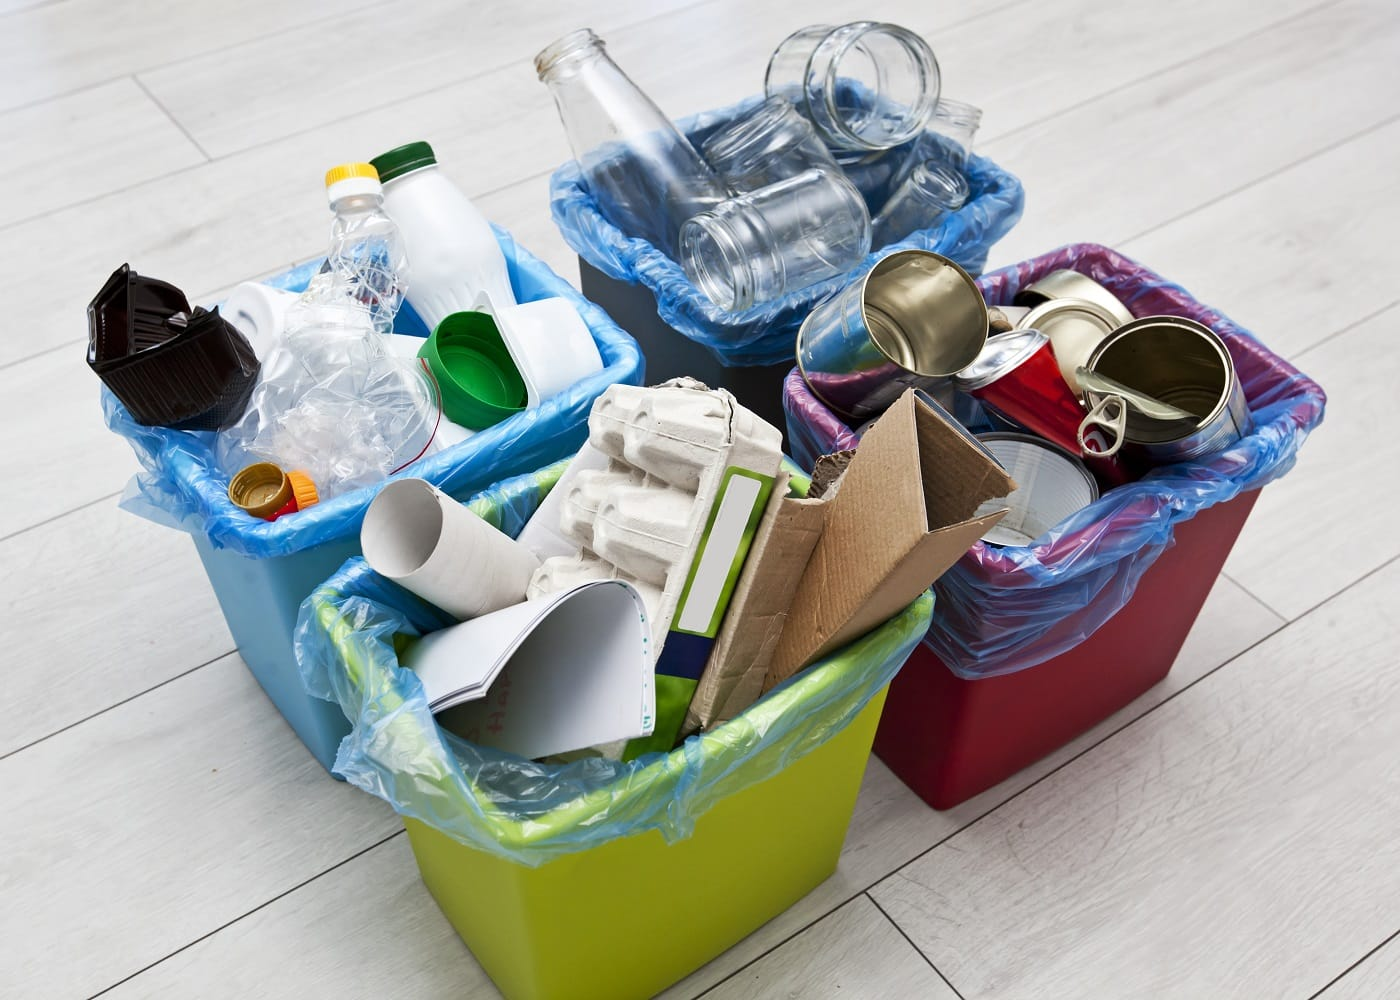 Three different full containers for sorting garbage. For plastic, paper, metal